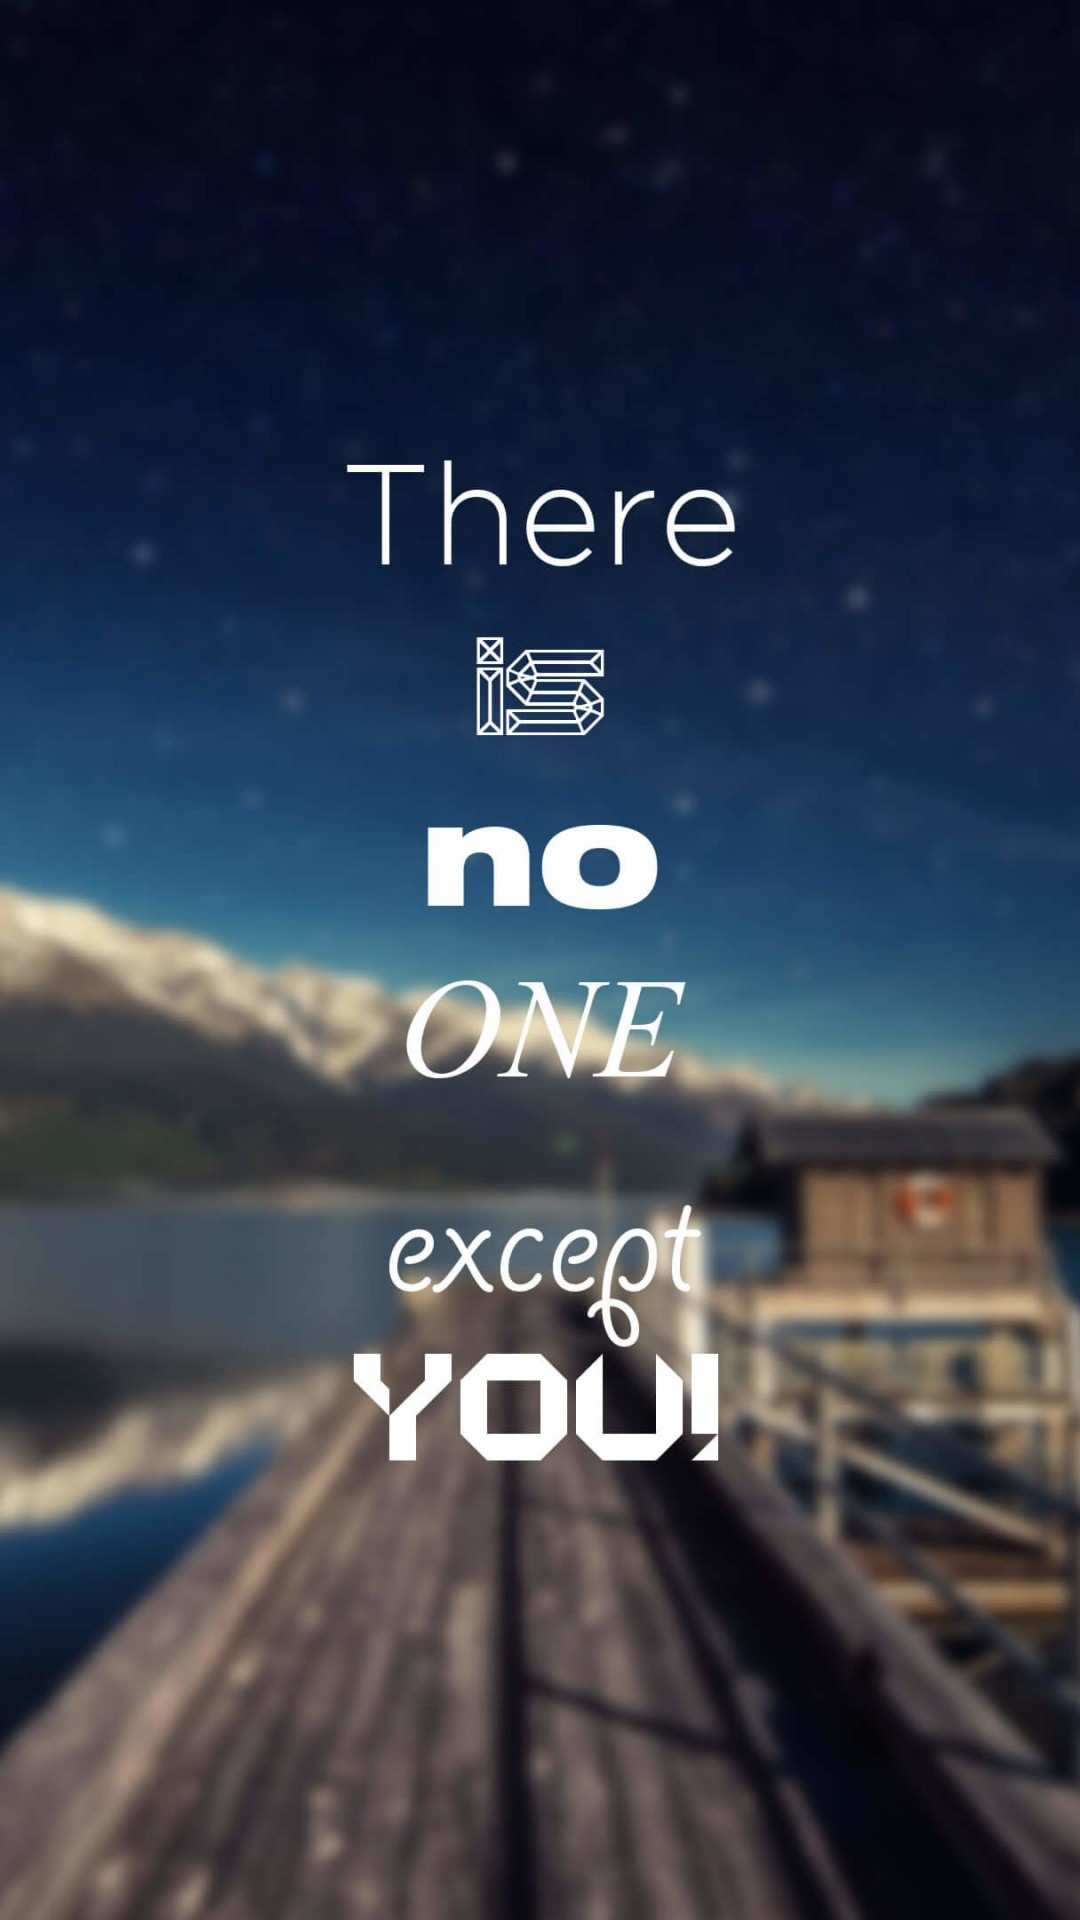 There Is No One Except You Wallpaper for Google Nexus 5